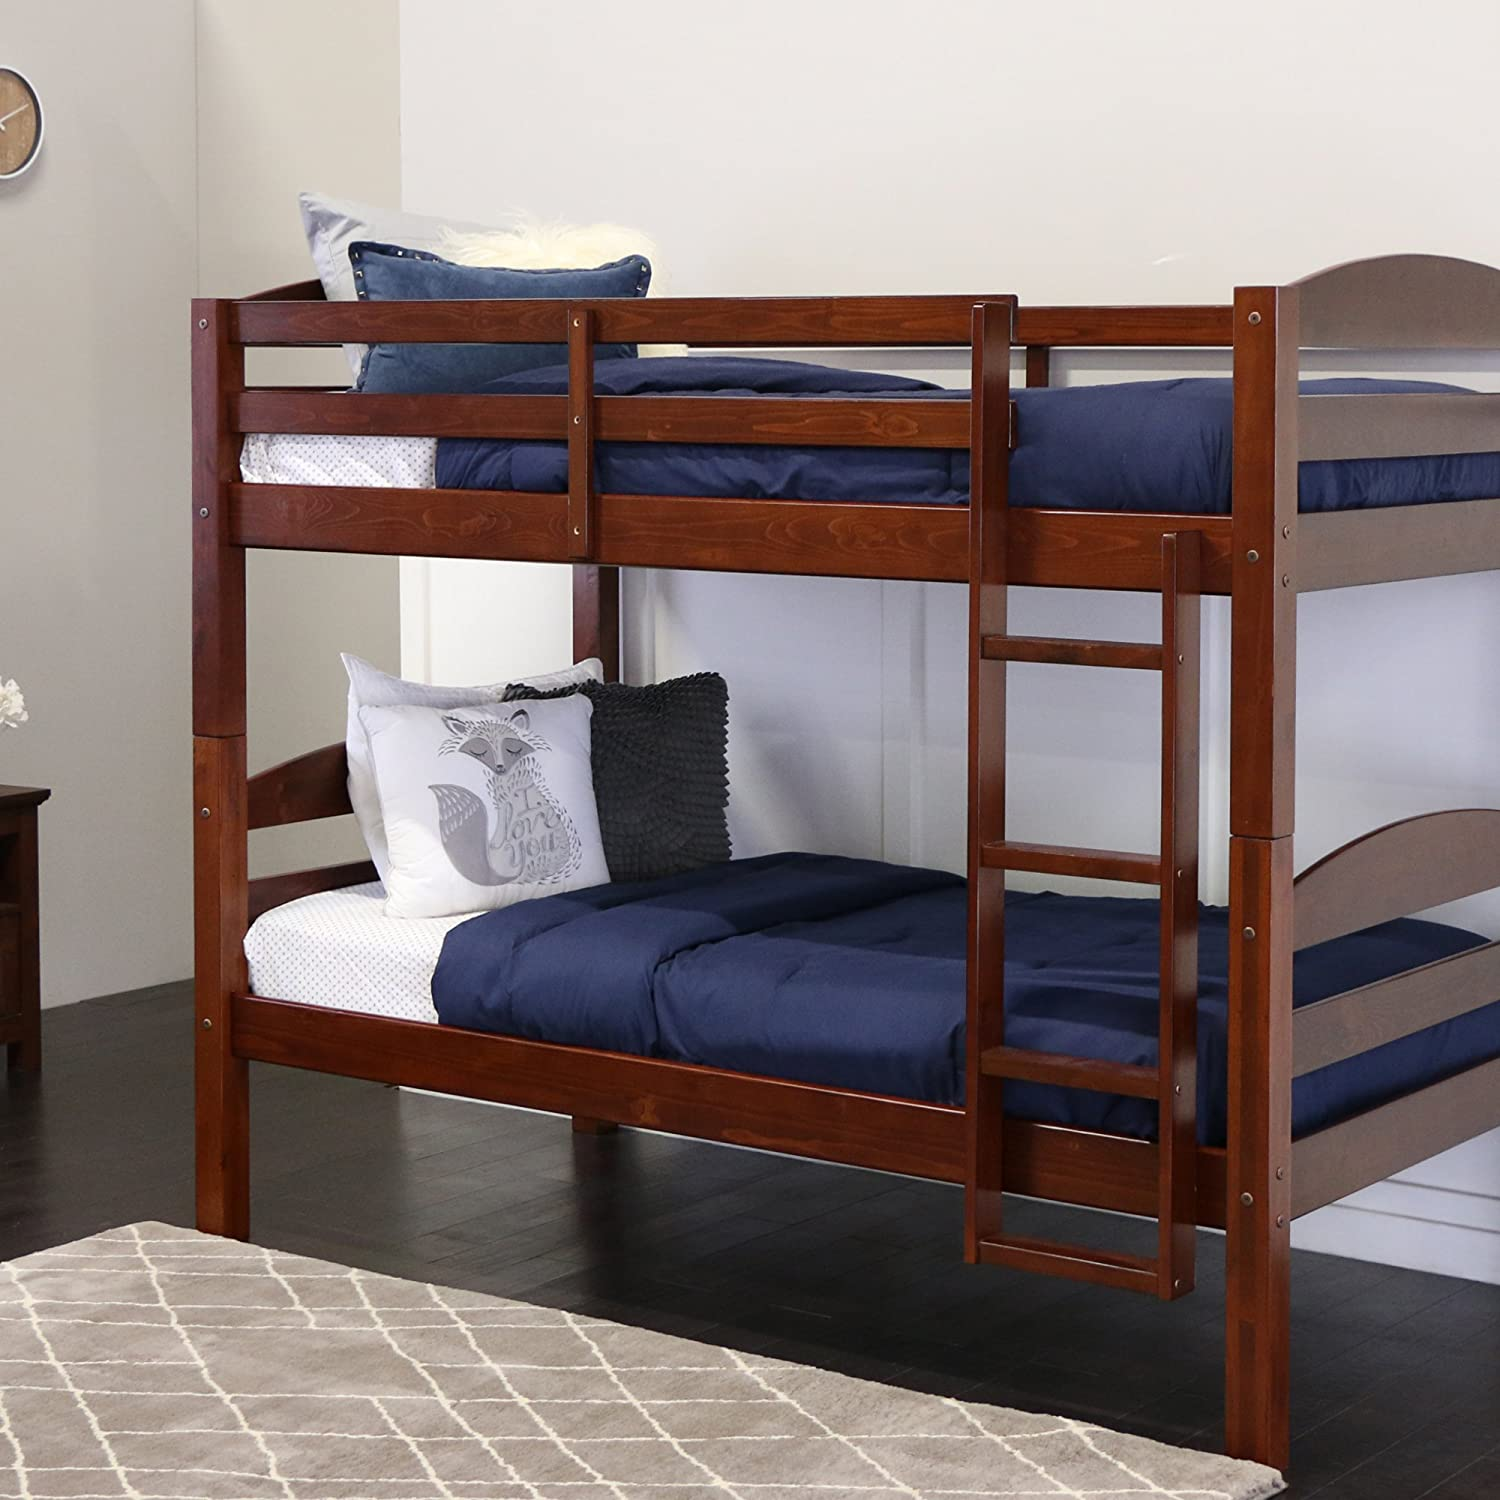 Top 7 Best Bunk Beds for Toddlers Reviews in 2020 3